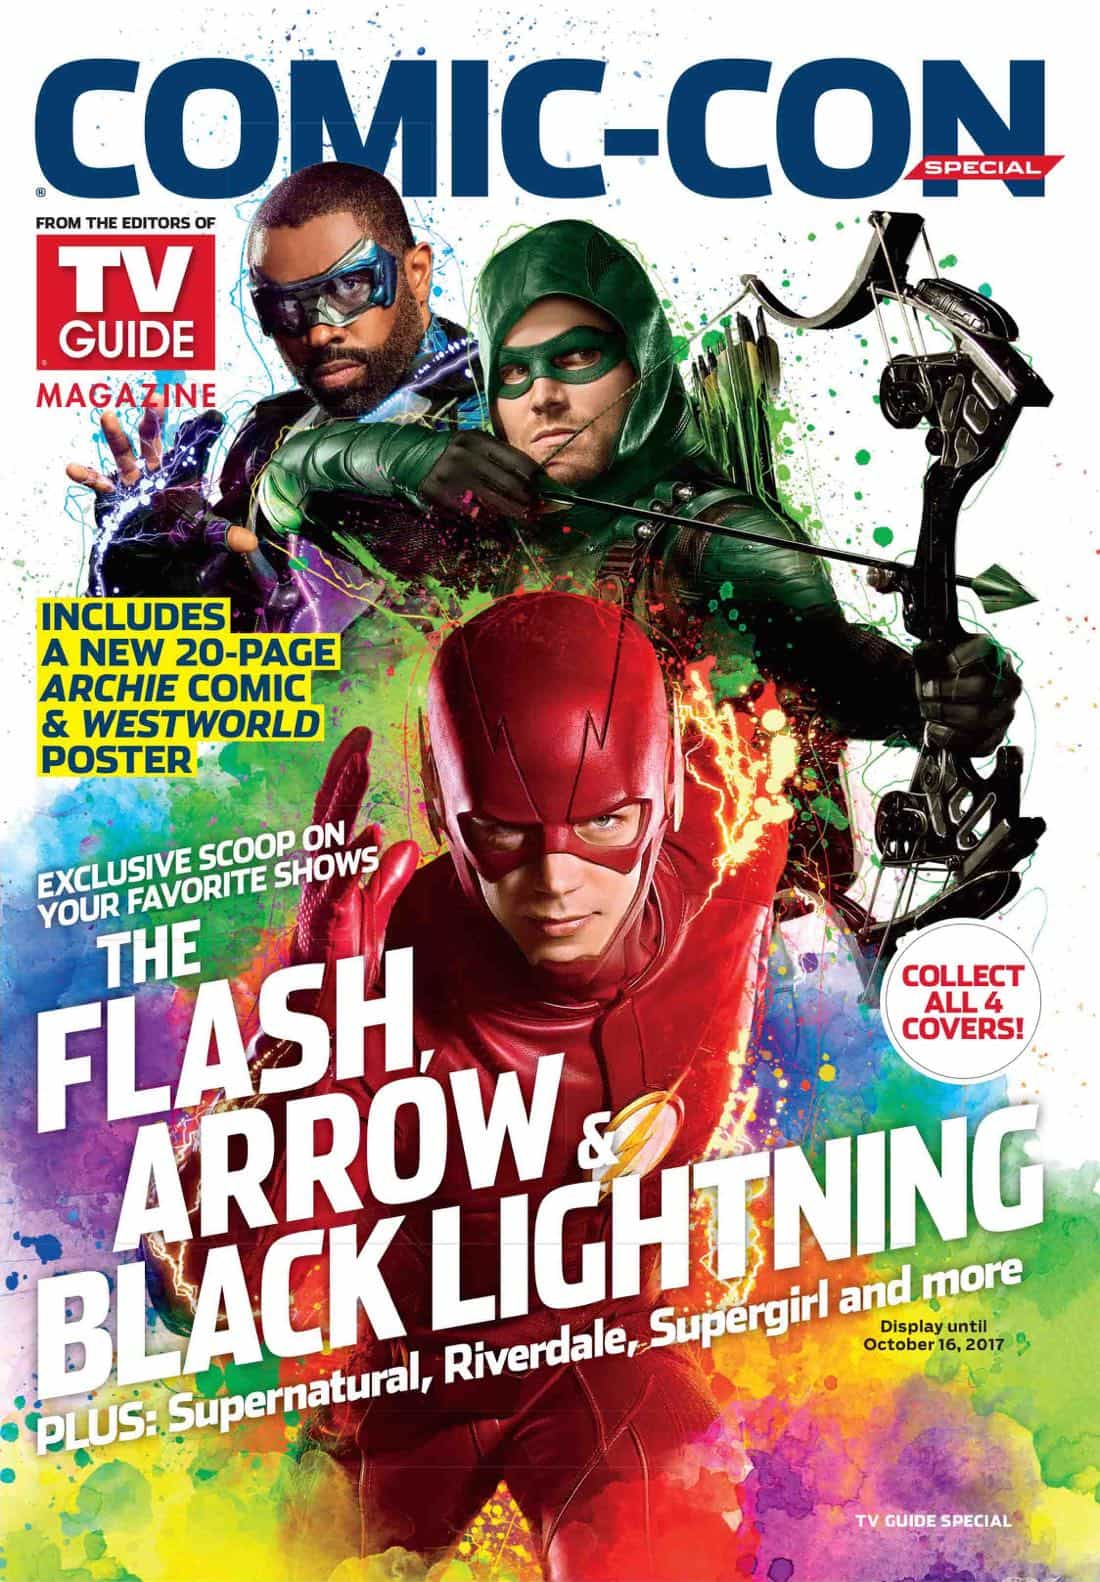 Arrow-Black-Lightning-The-Flash-TVGM-cover